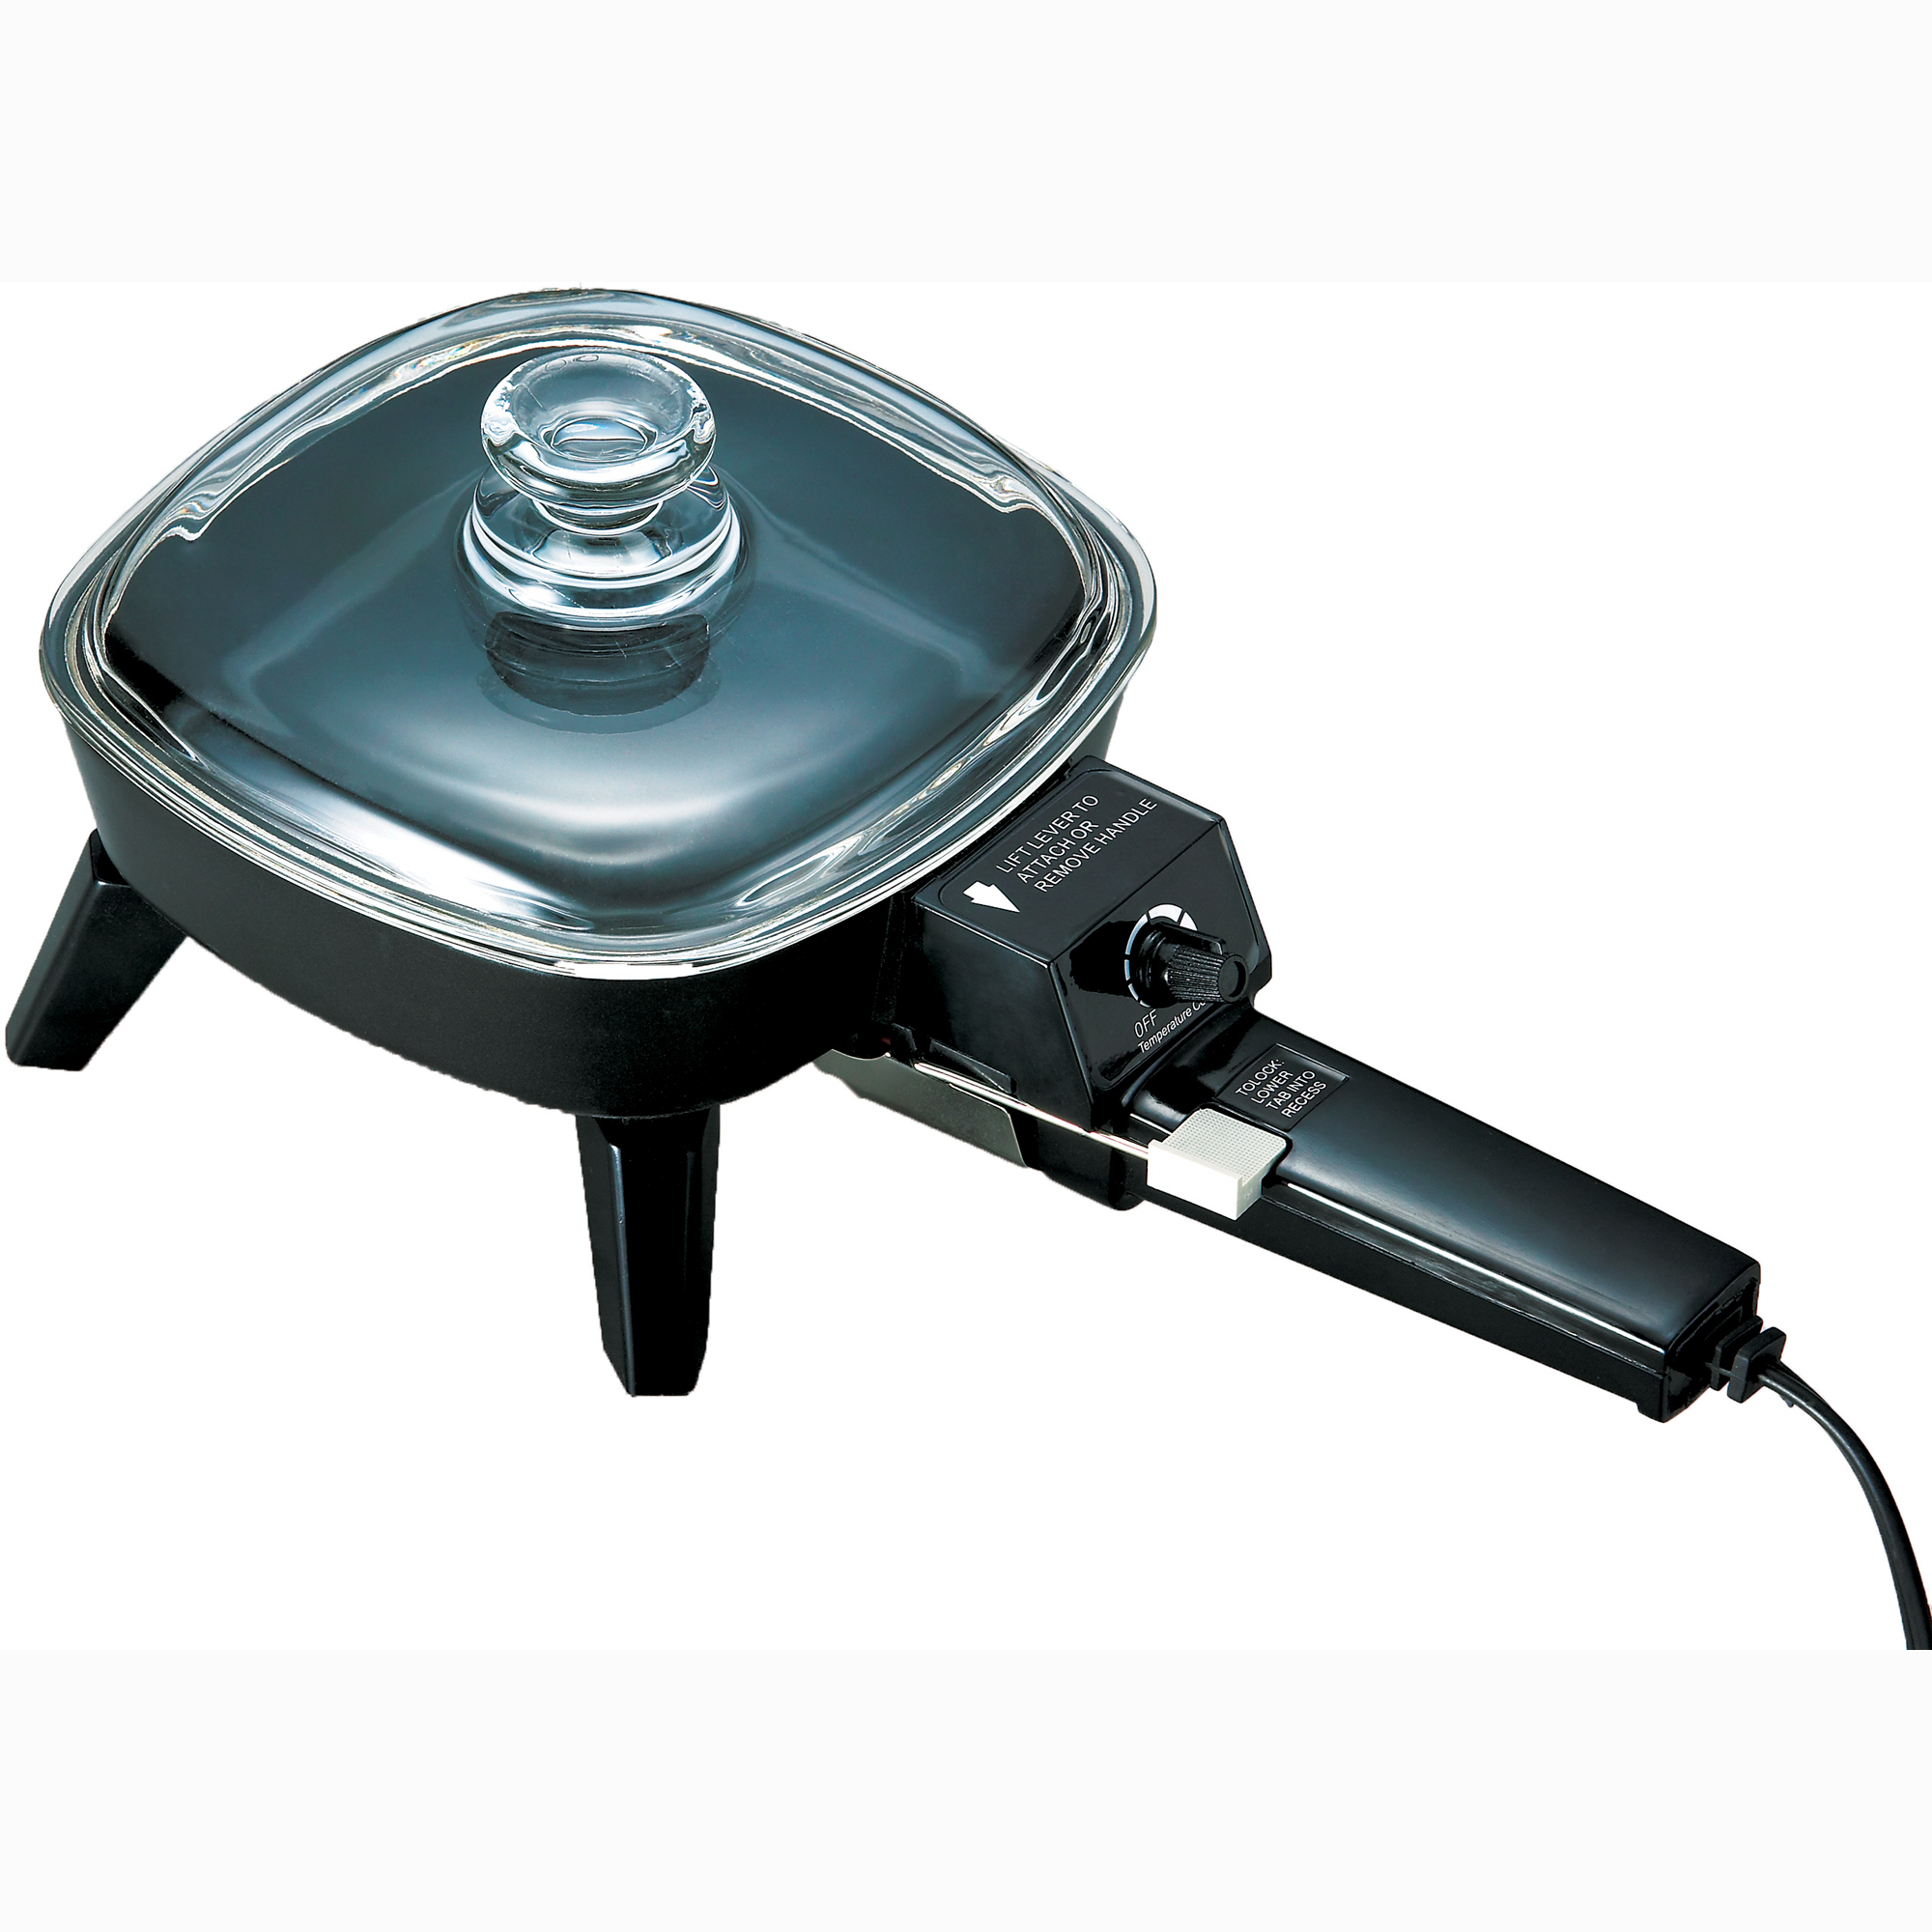 Brentwood 6 Inch Electric Skillet with Glass Lid